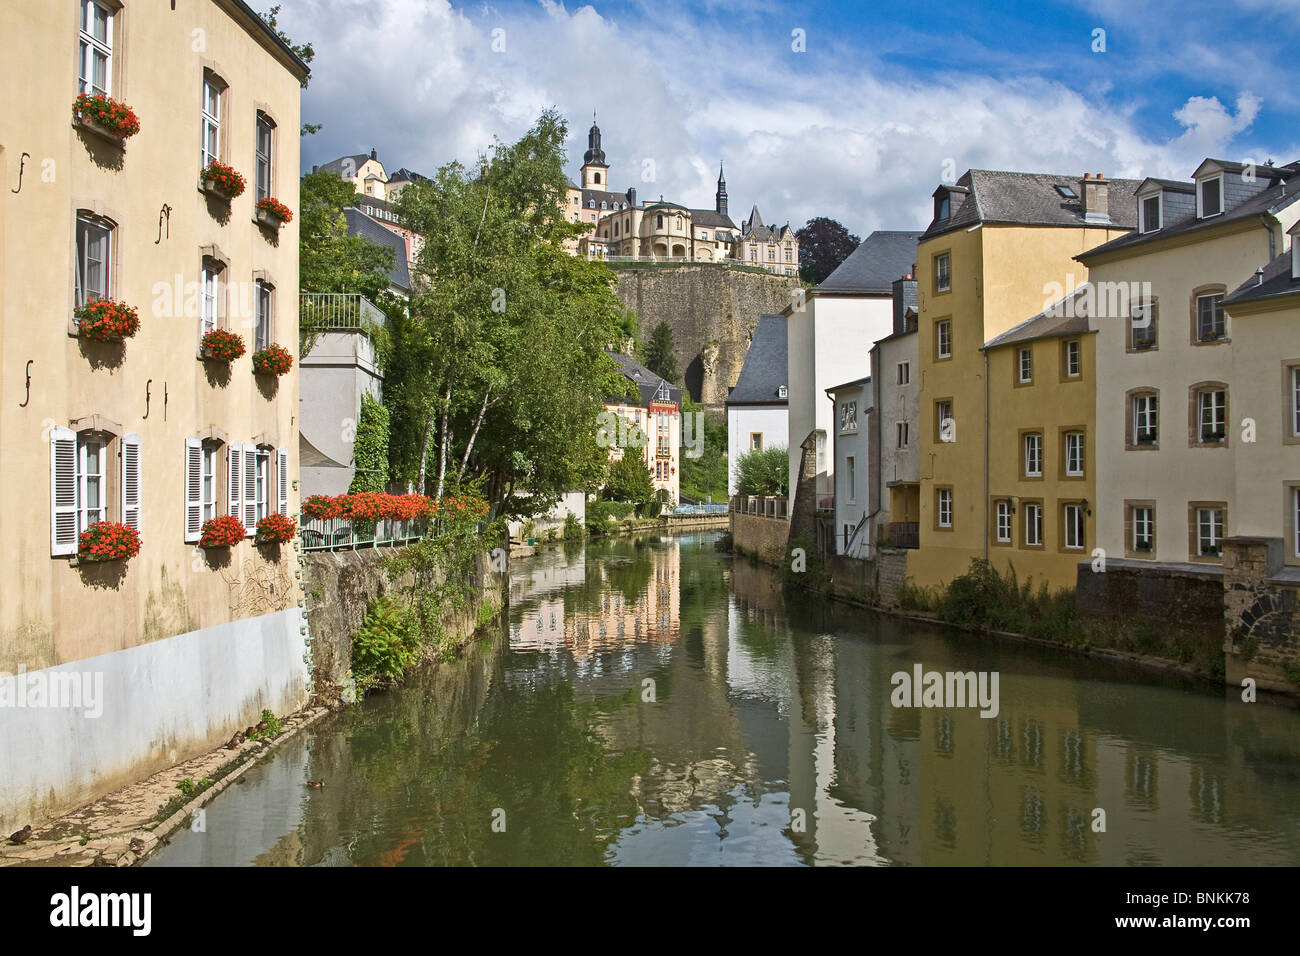 Luxembourg. View from the River Alzette July 2OO8 - Stock Image